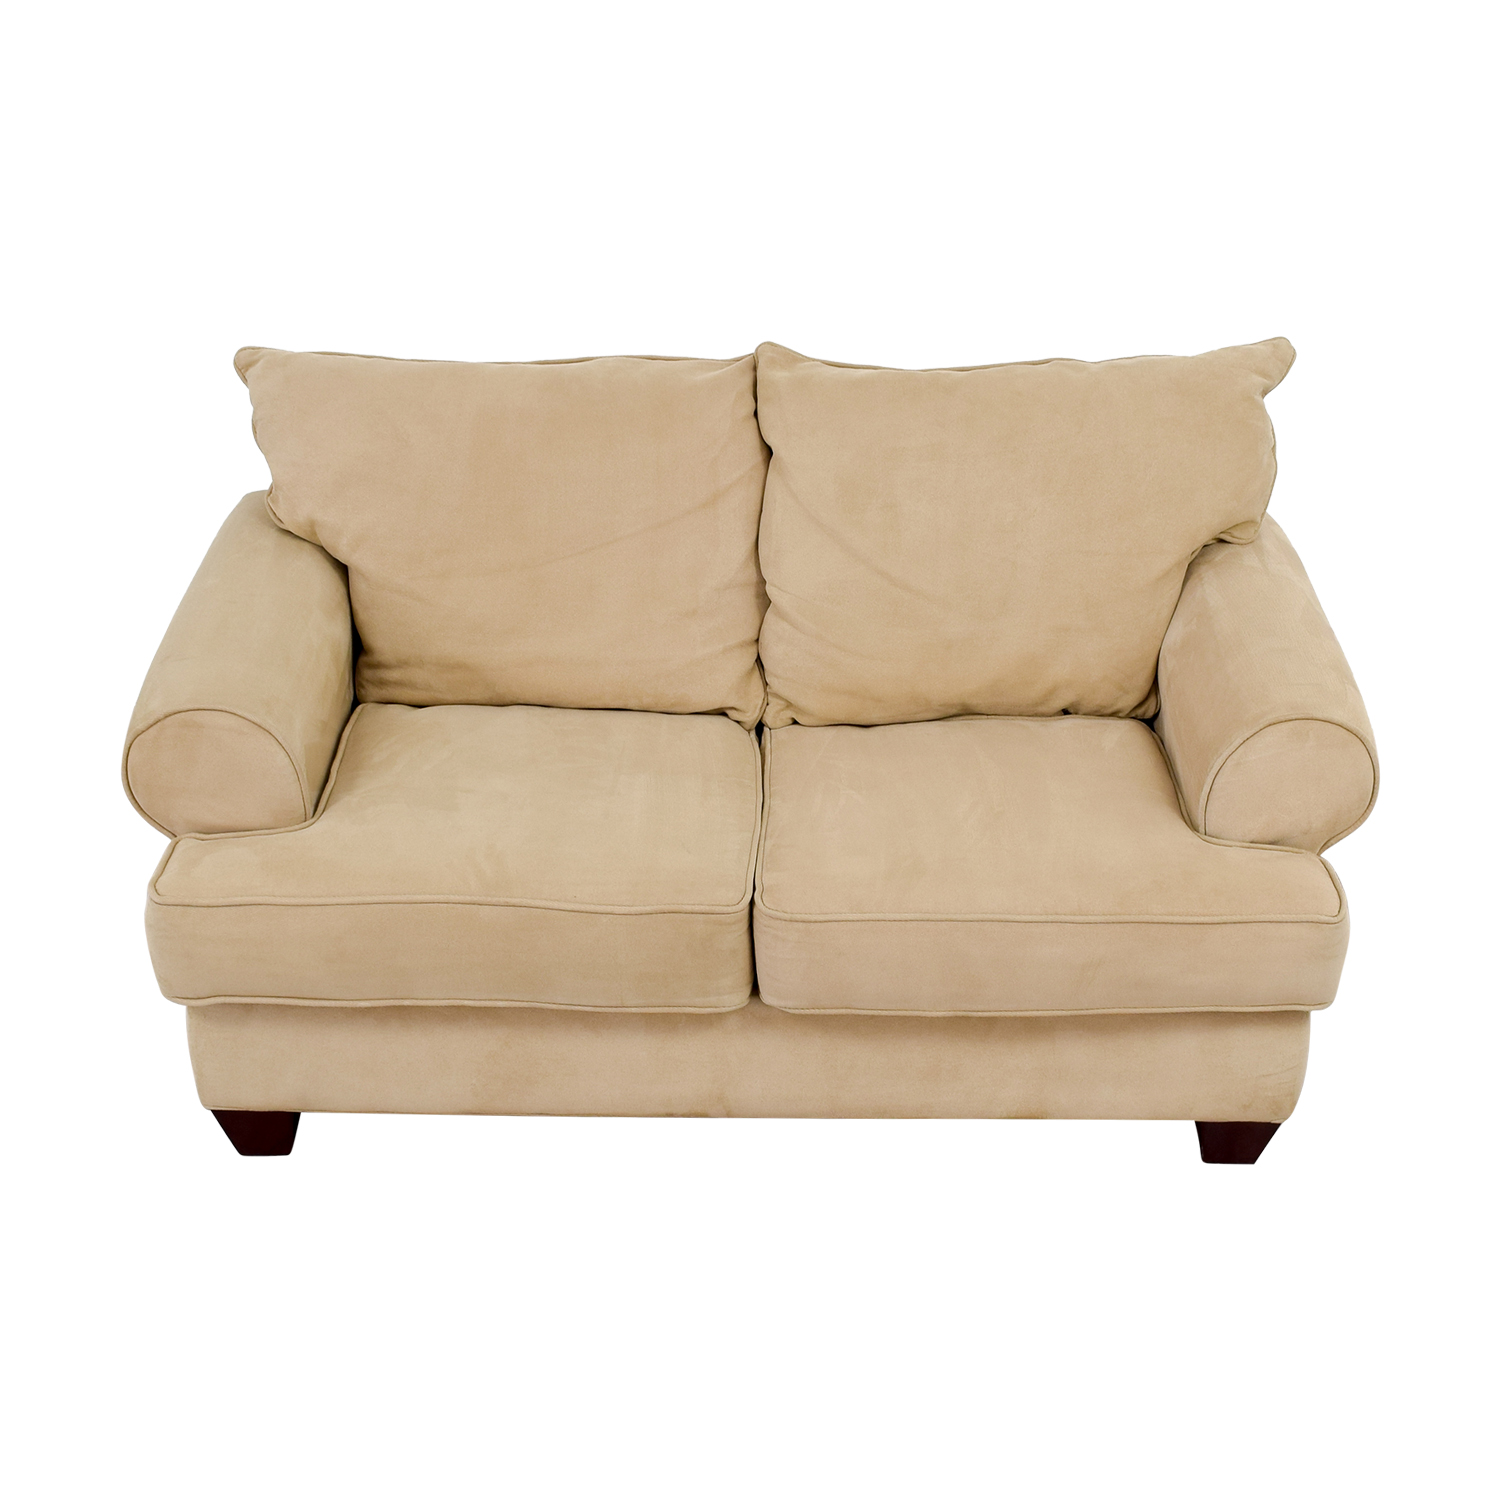 sofas bernie avatar room headrest living power loveseat tan s furniture console loveseats phyl reclining